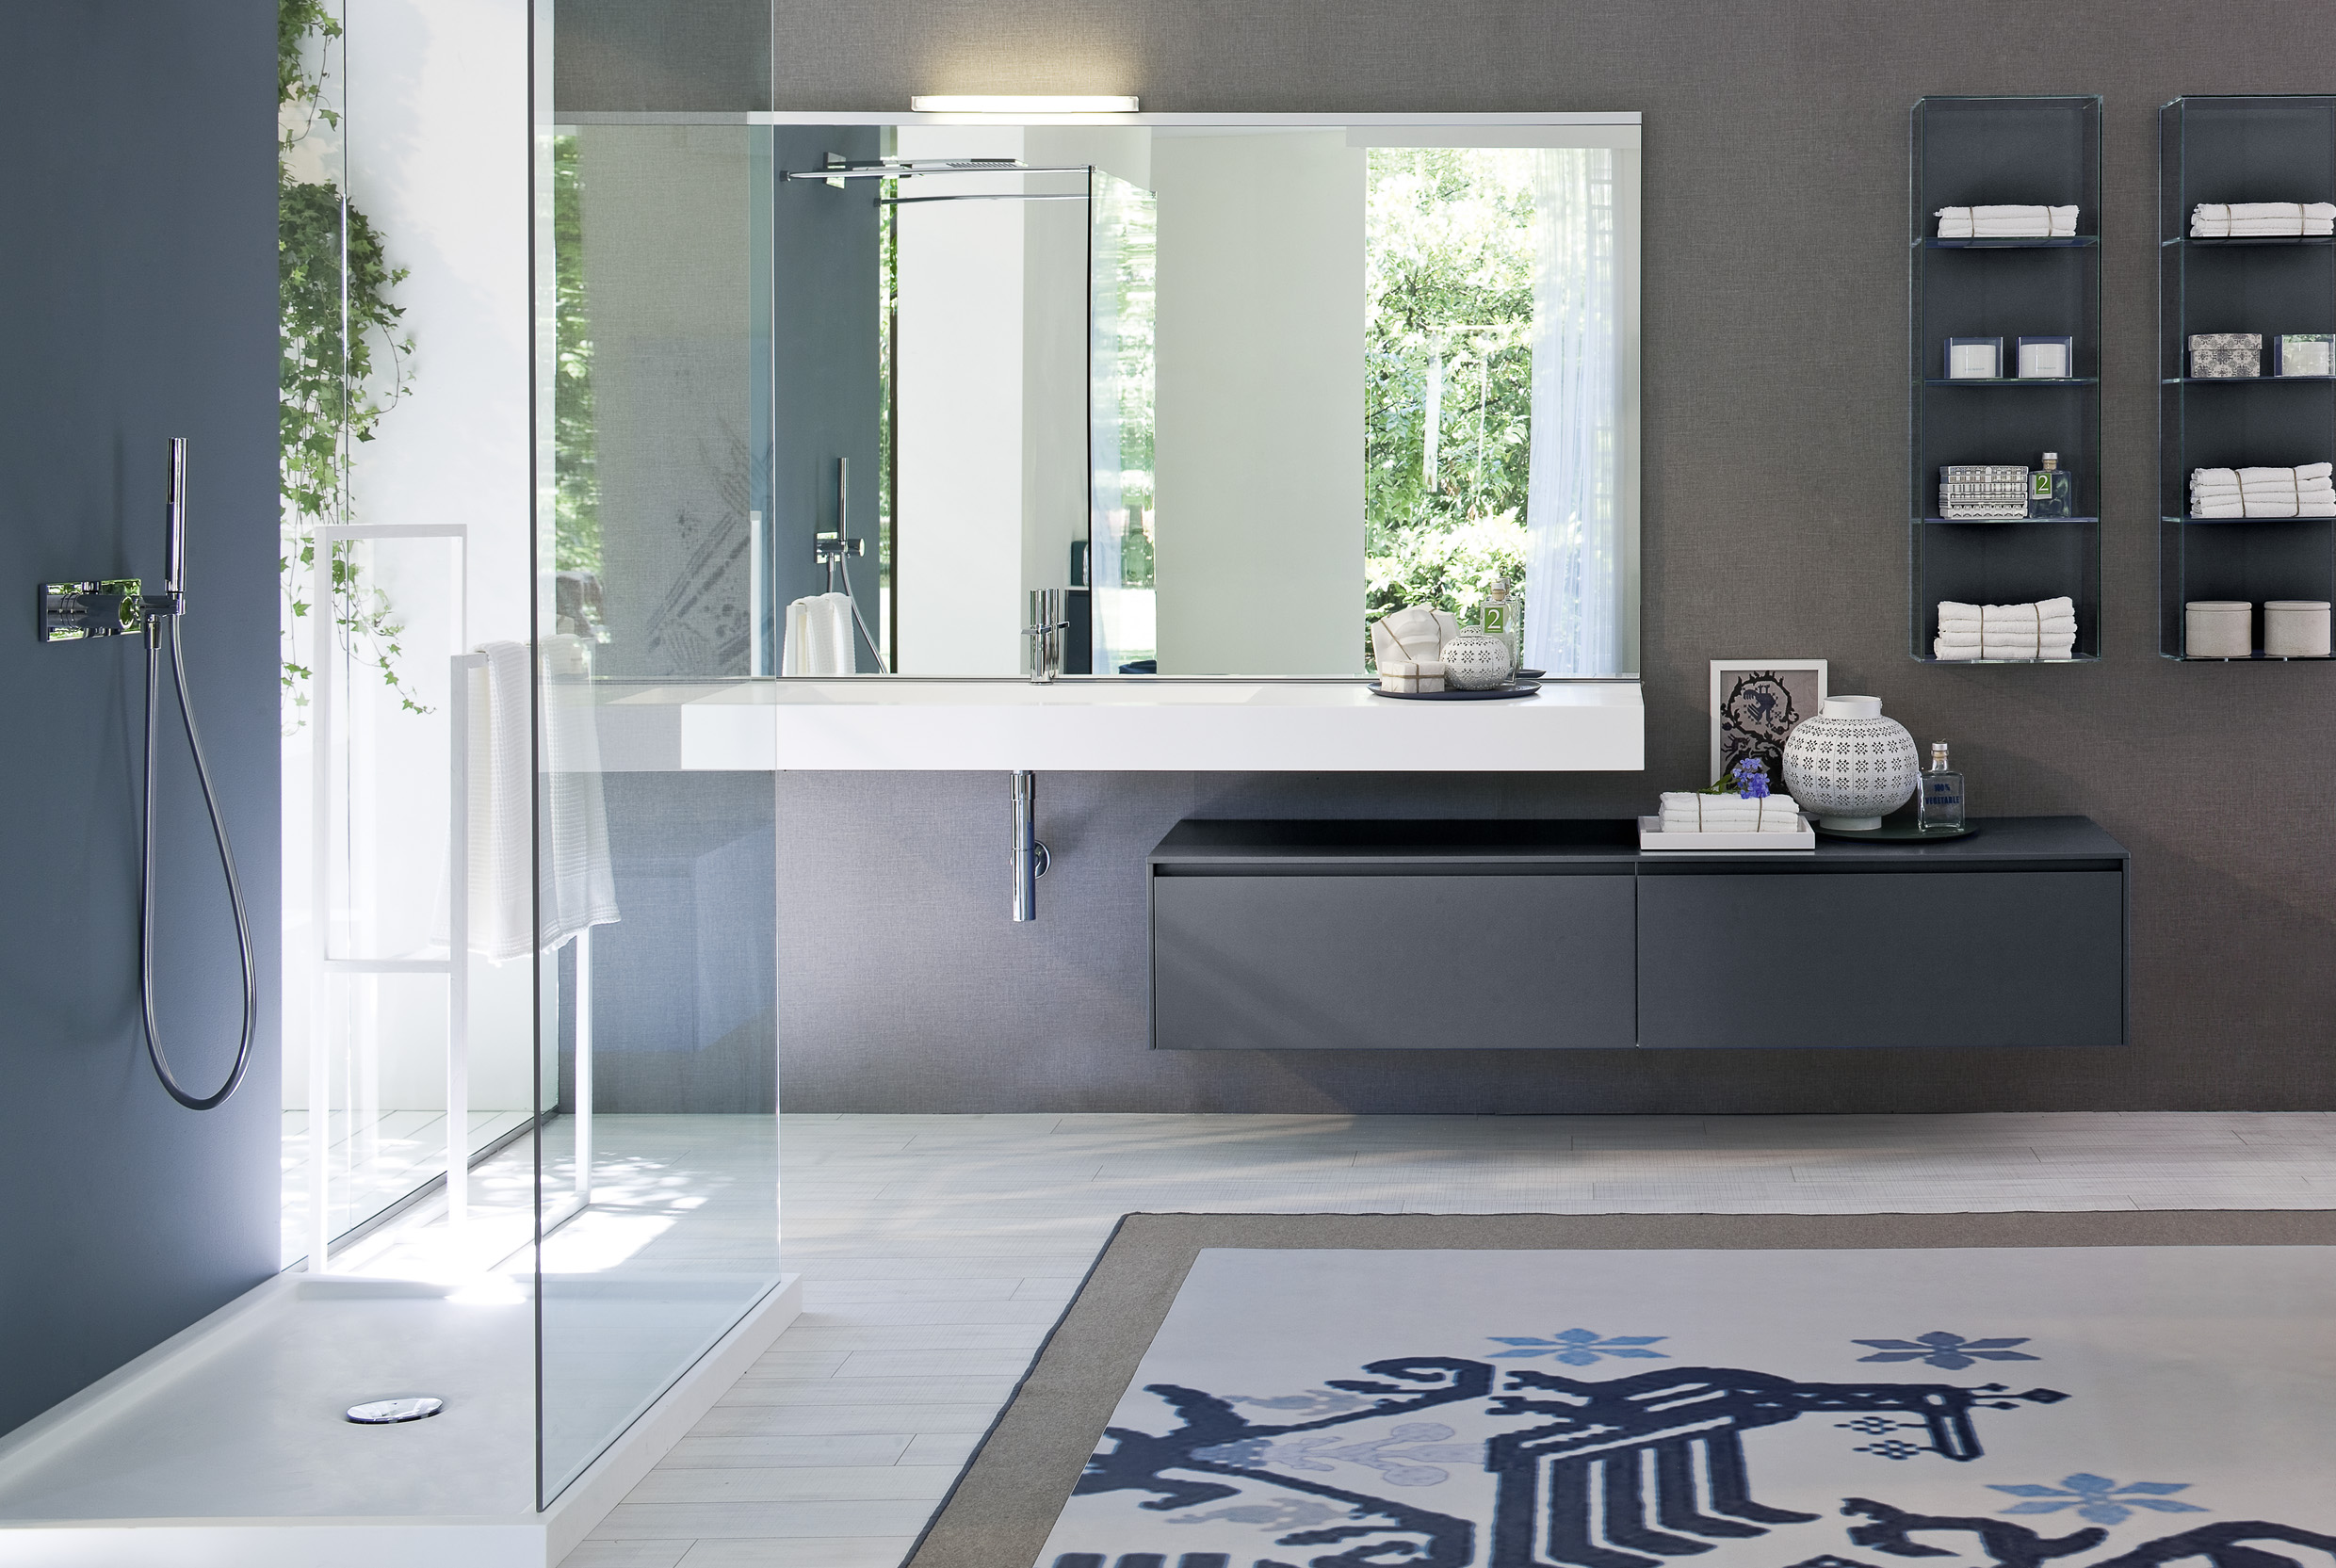 BATHROOM - We offer a line of modern bathroom vanities that complements our kitchen lines. Our bathroom vanities are in line with our reputation on quality and on the cutting edge of innovation and Italian design.